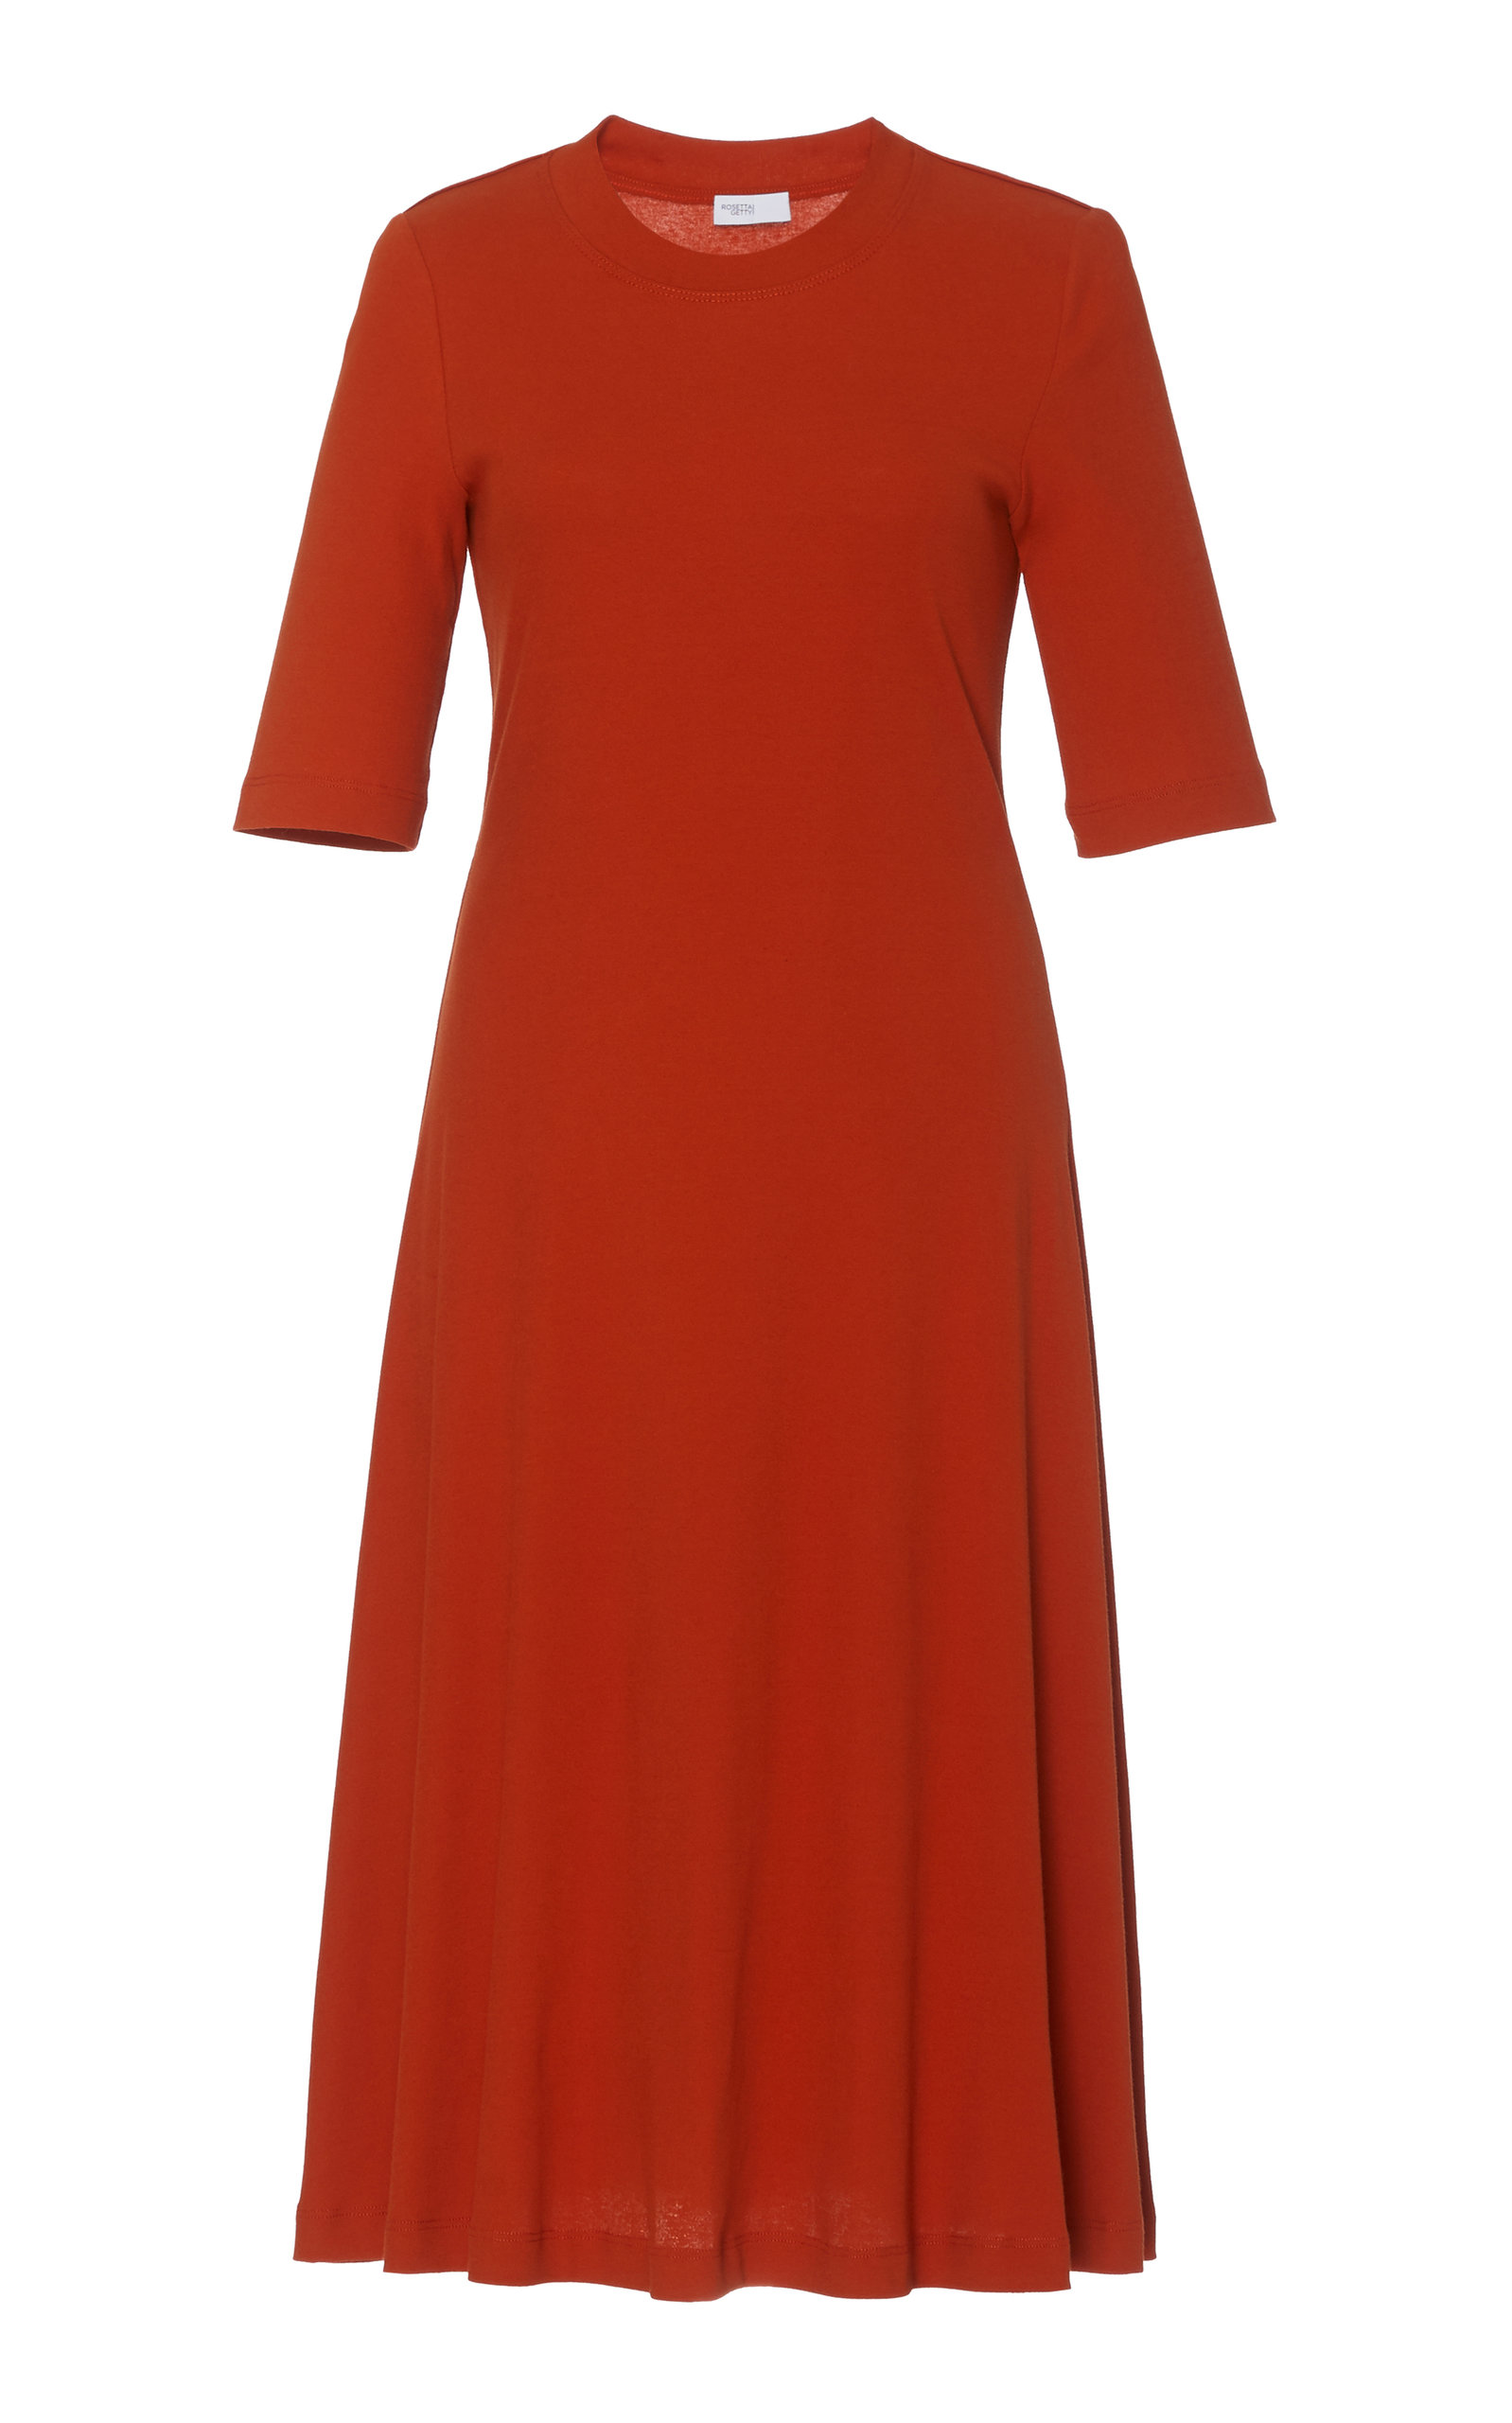 Buy Rosetta Getty Cropped Sleeve T-Shirt Dress online, shop Rosetta Getty at the best price